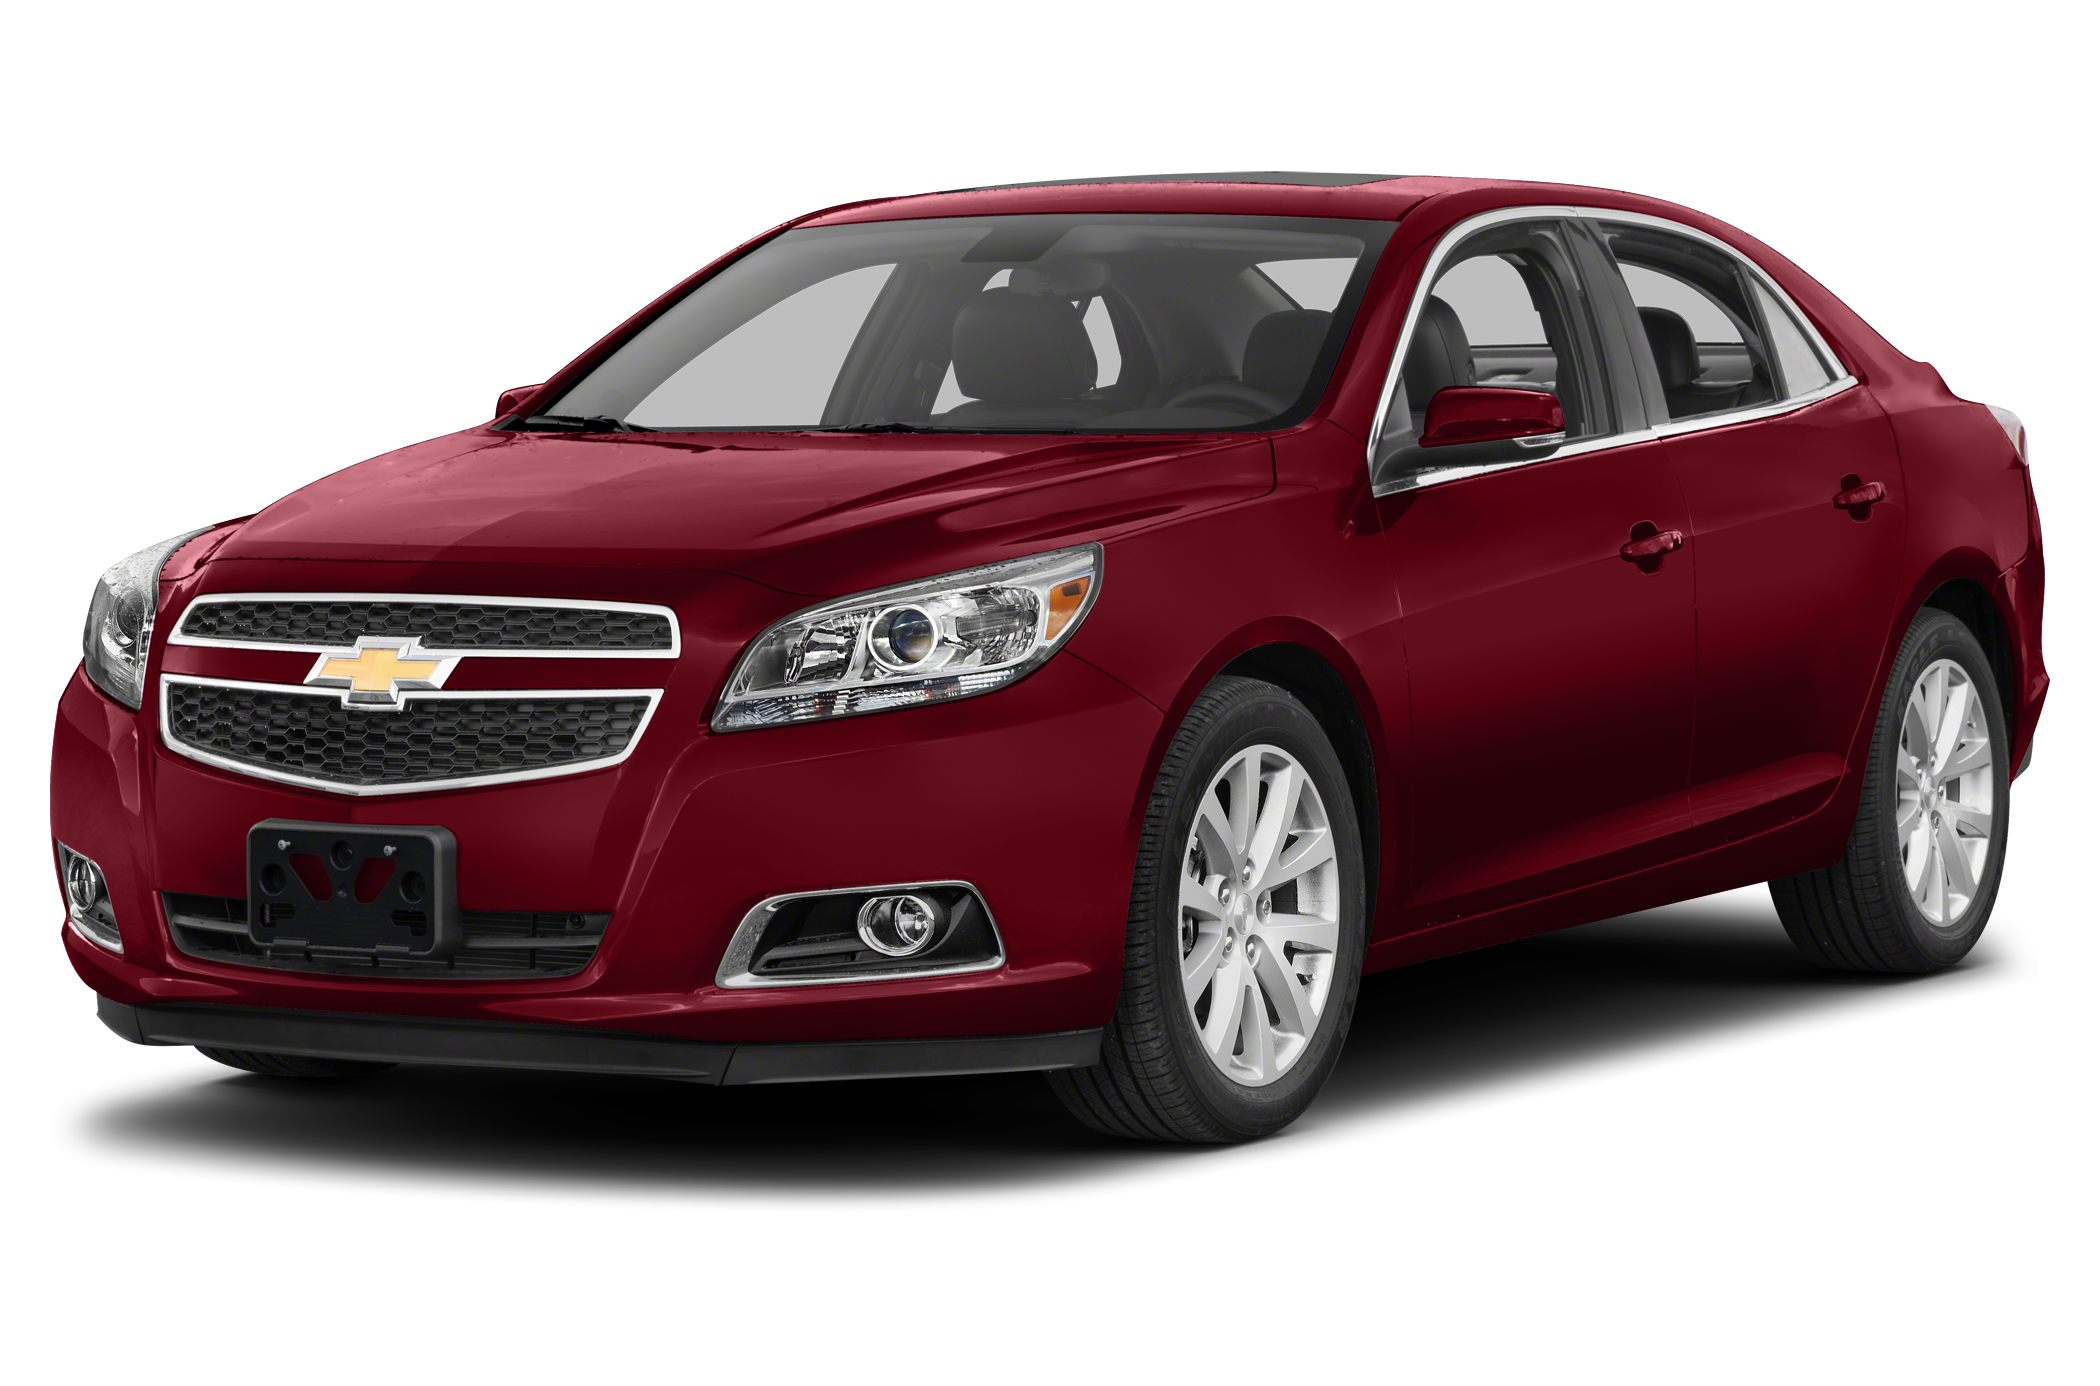 2013 Chevrolet Malibu 2LZ Sedan for sale in Winston Salem for $22,990 with 3,403 miles